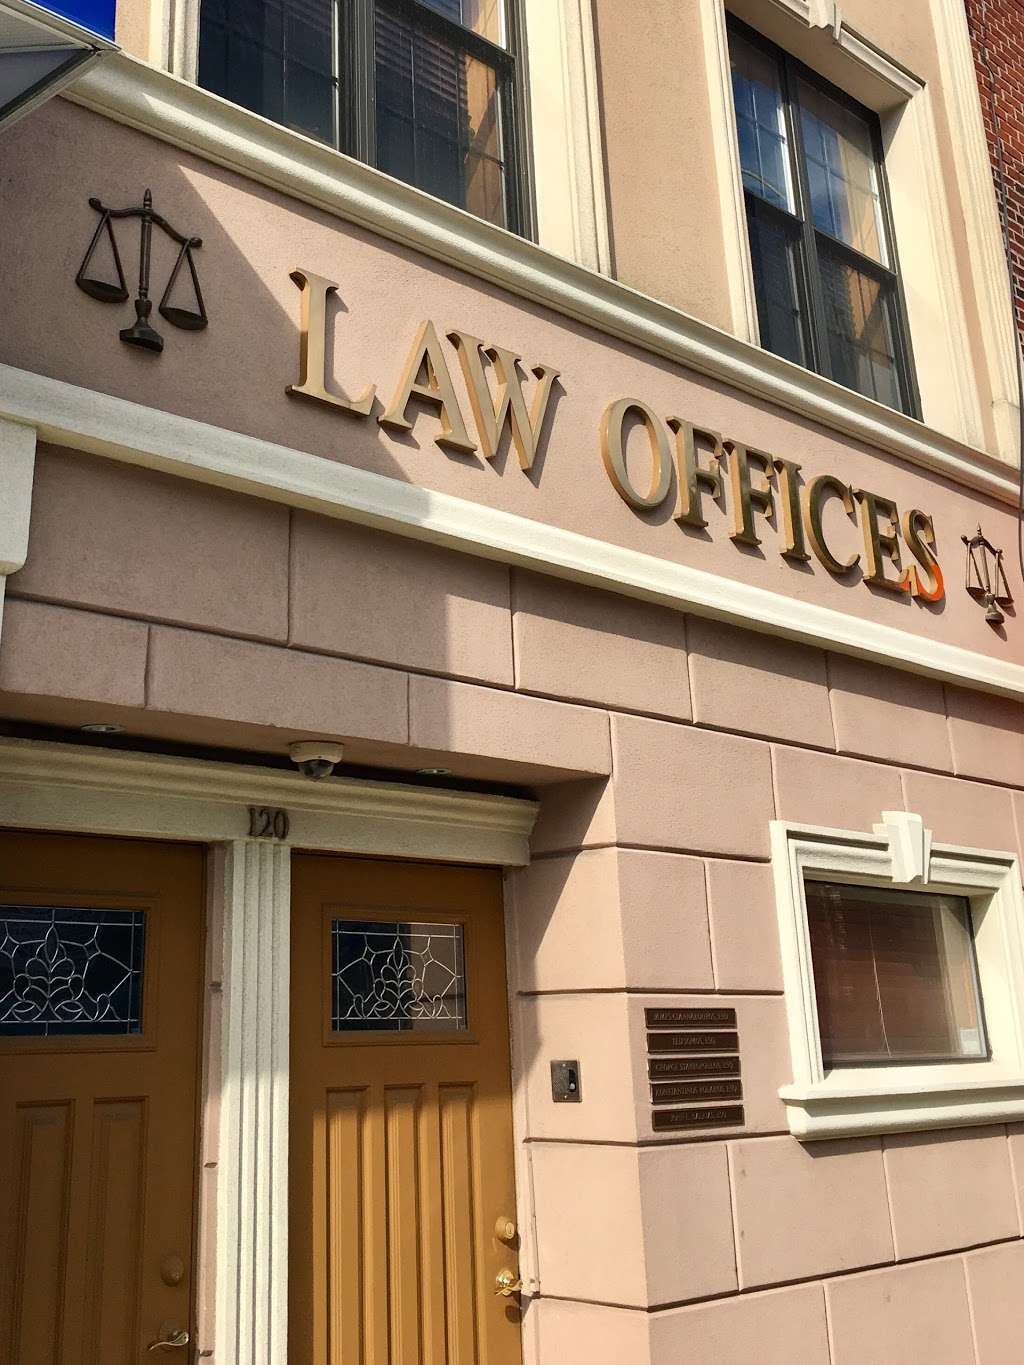 The Volakos Law Firm, P.C. - lawyer  | Photo 1 of 2 | Address: 120 Bay Ridge Ave, Brooklyn, NY 11220, USA | Phone: (718) 506-4069